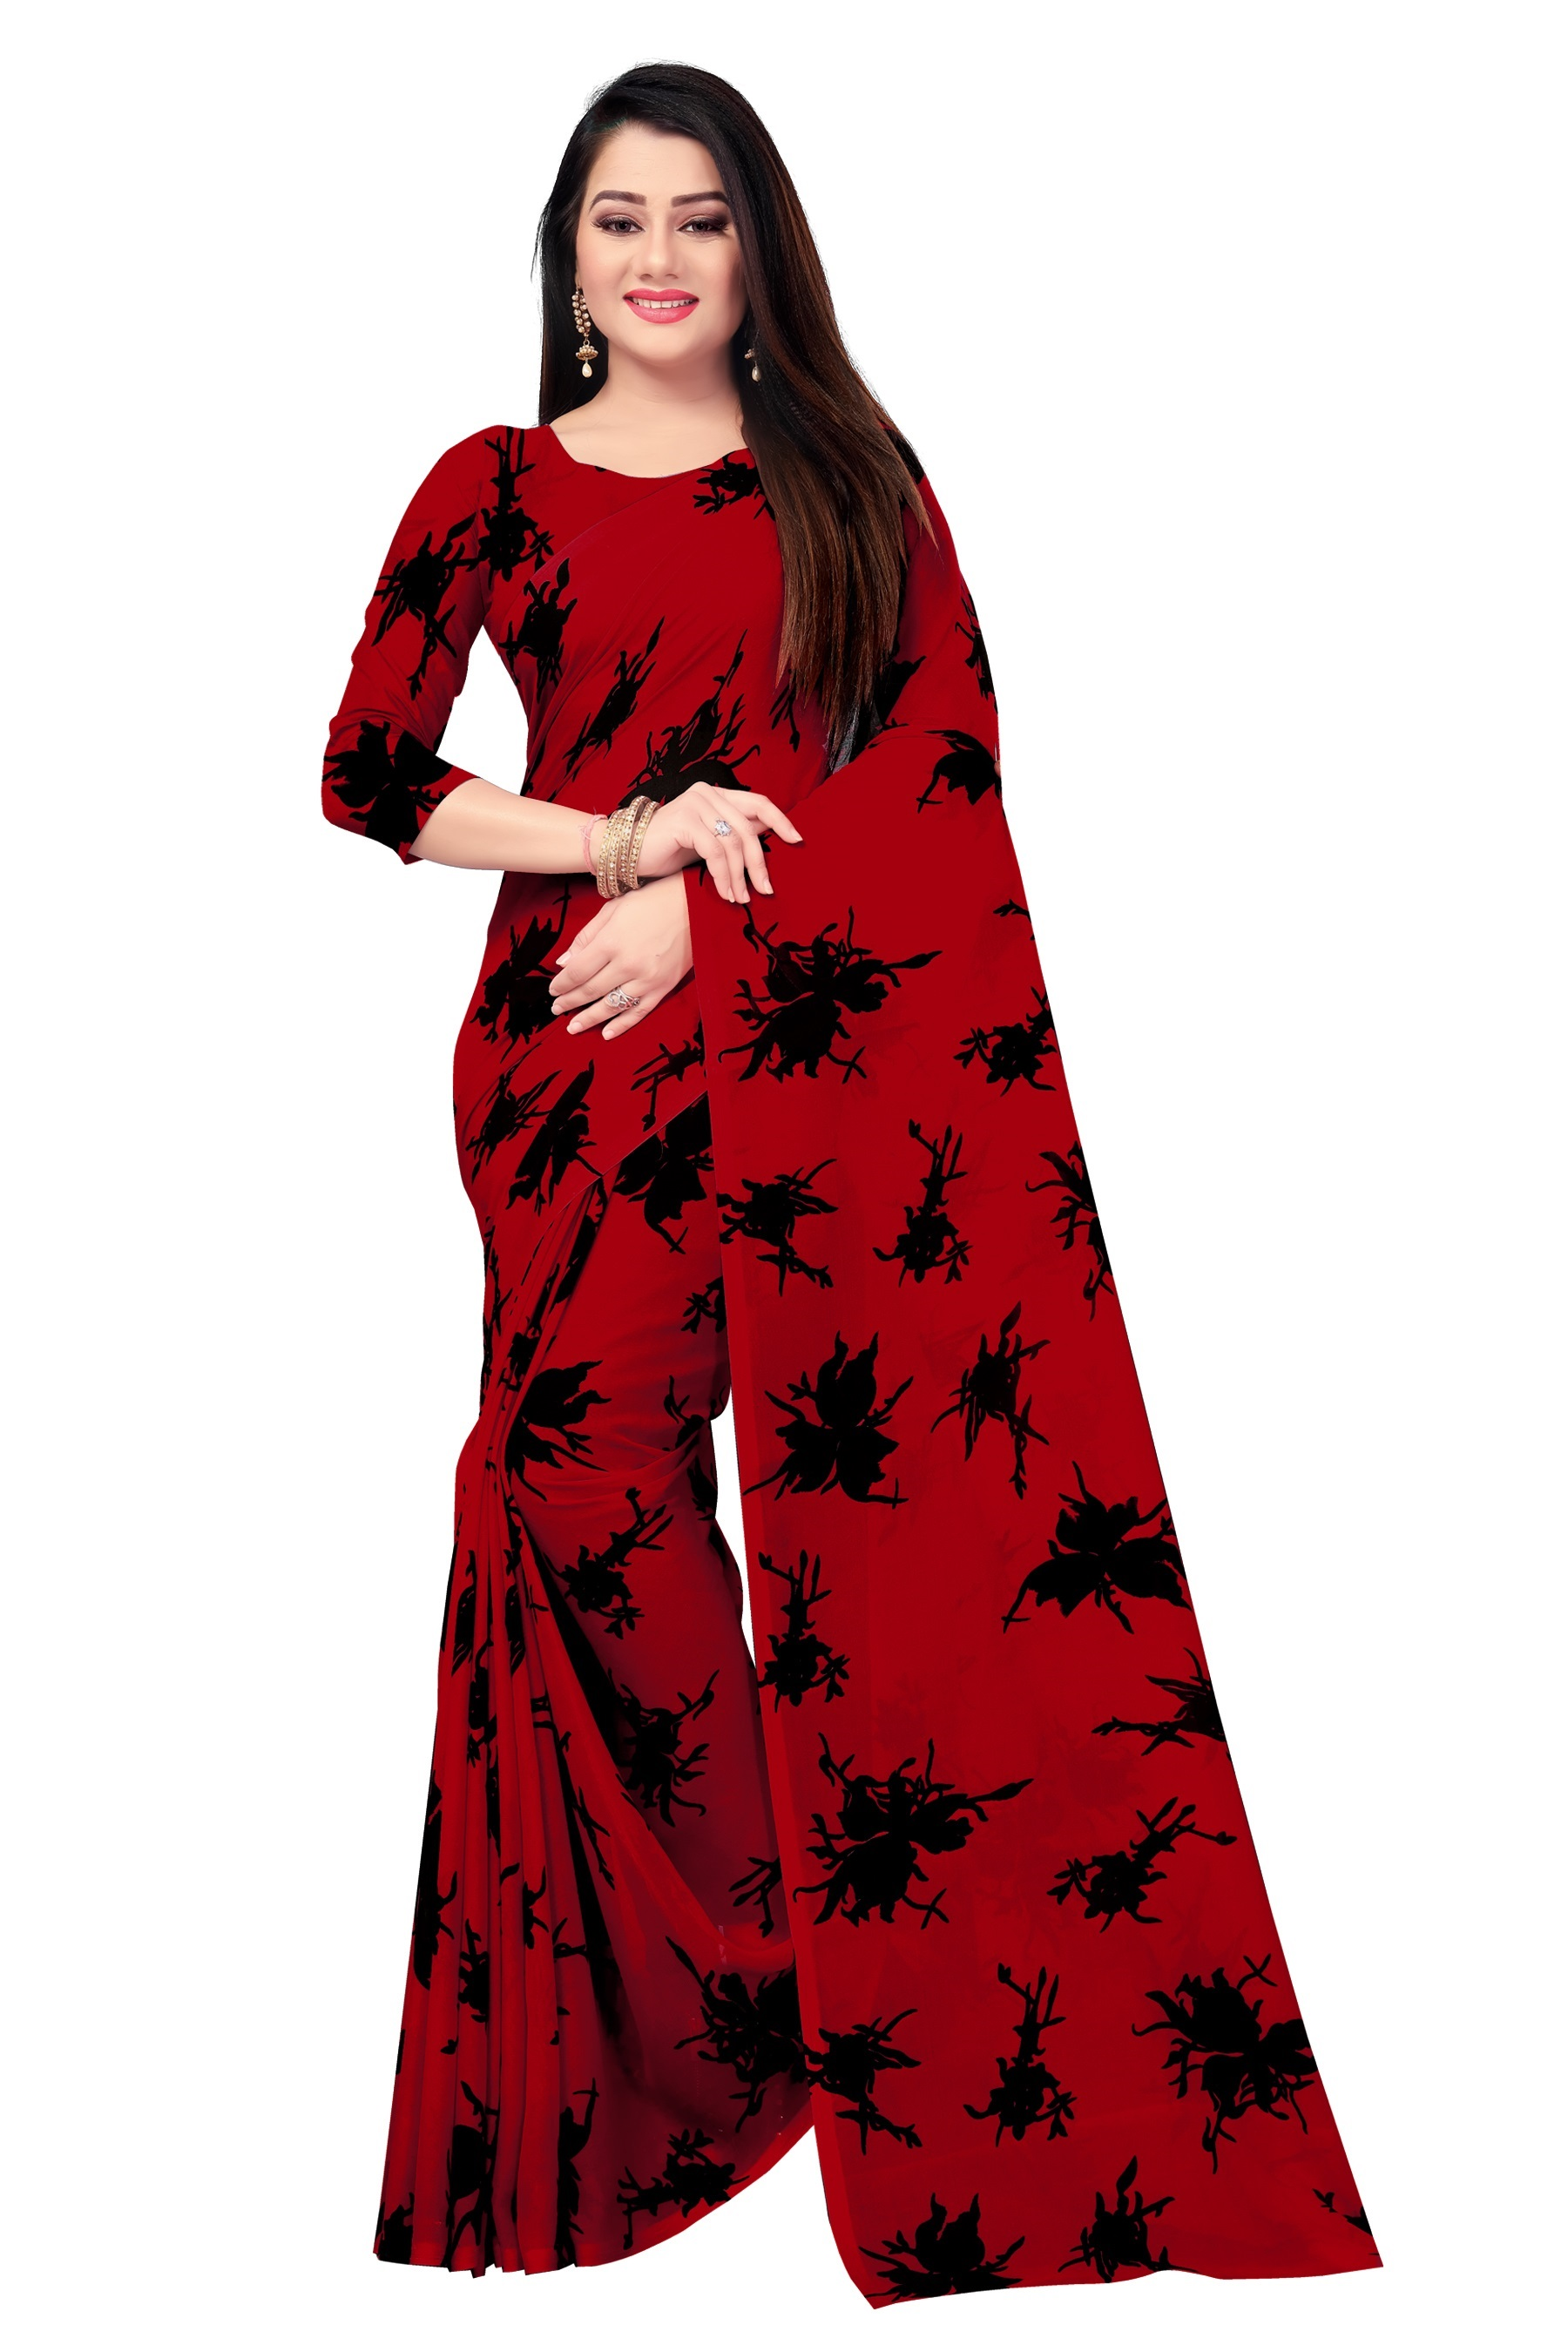 Venisa Exclusive Party Wear Geogette Maroon Red Color Floral Print Designer Saree For Women